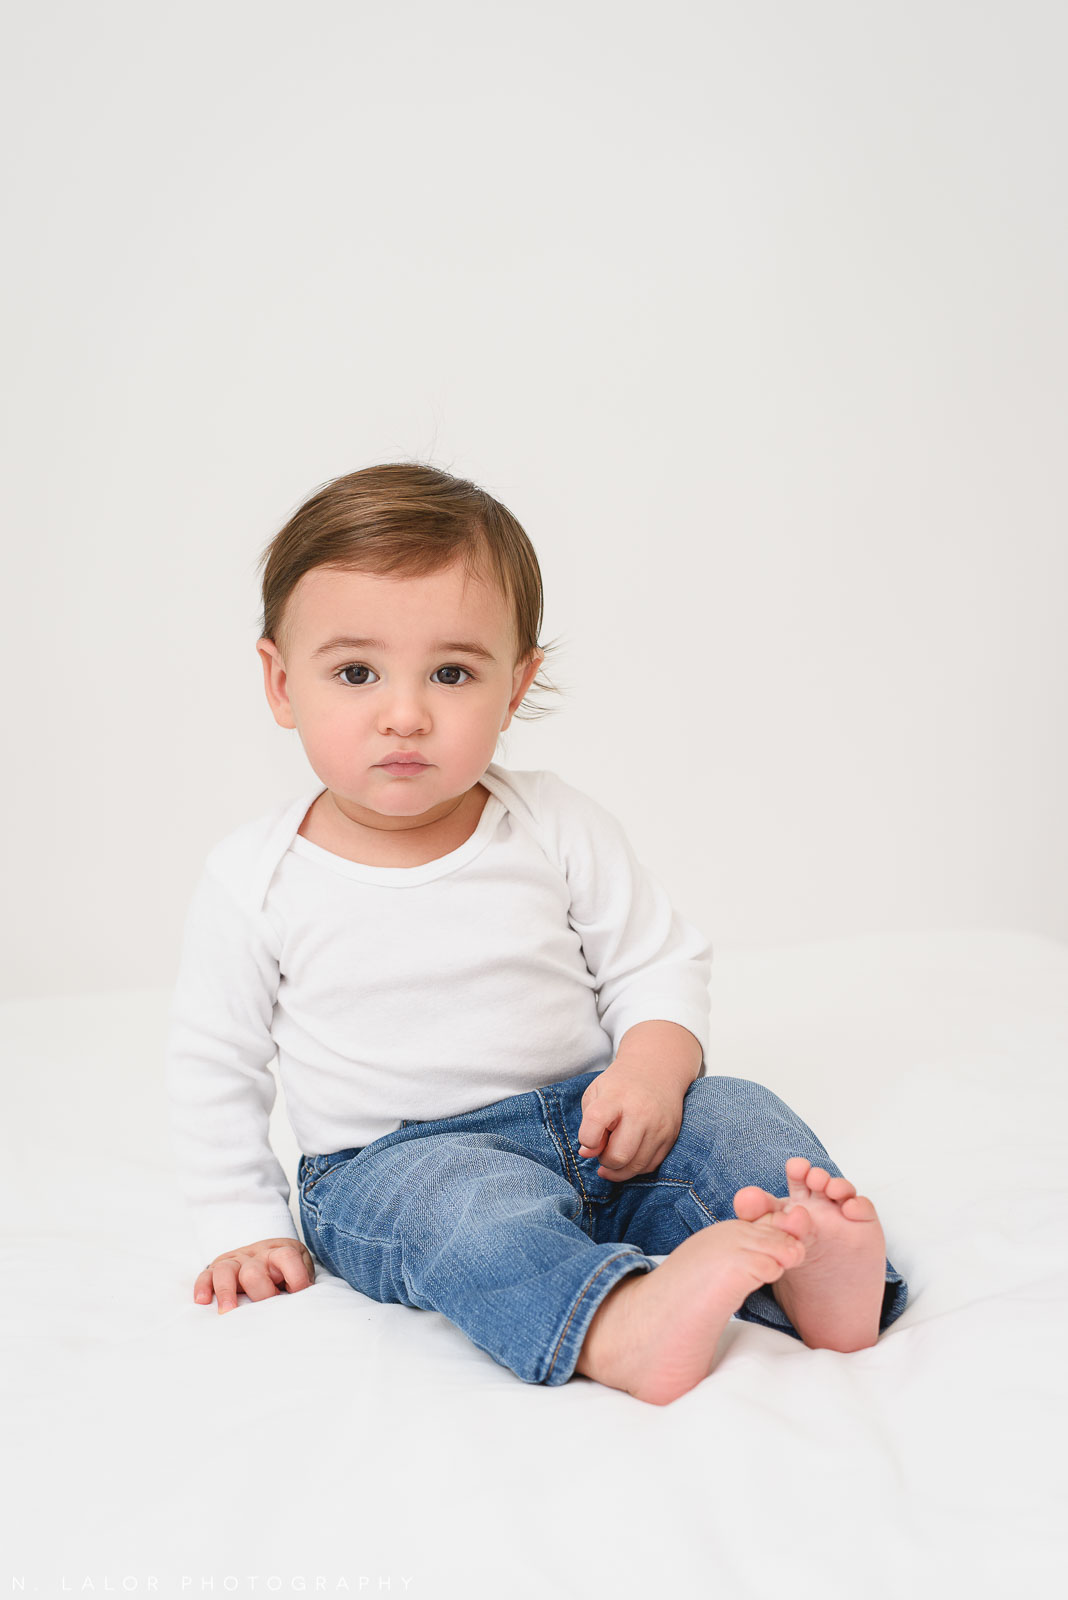 1-year old boy. Studio portrait by N. Lalor Photography in Greenwich, Connecticut.